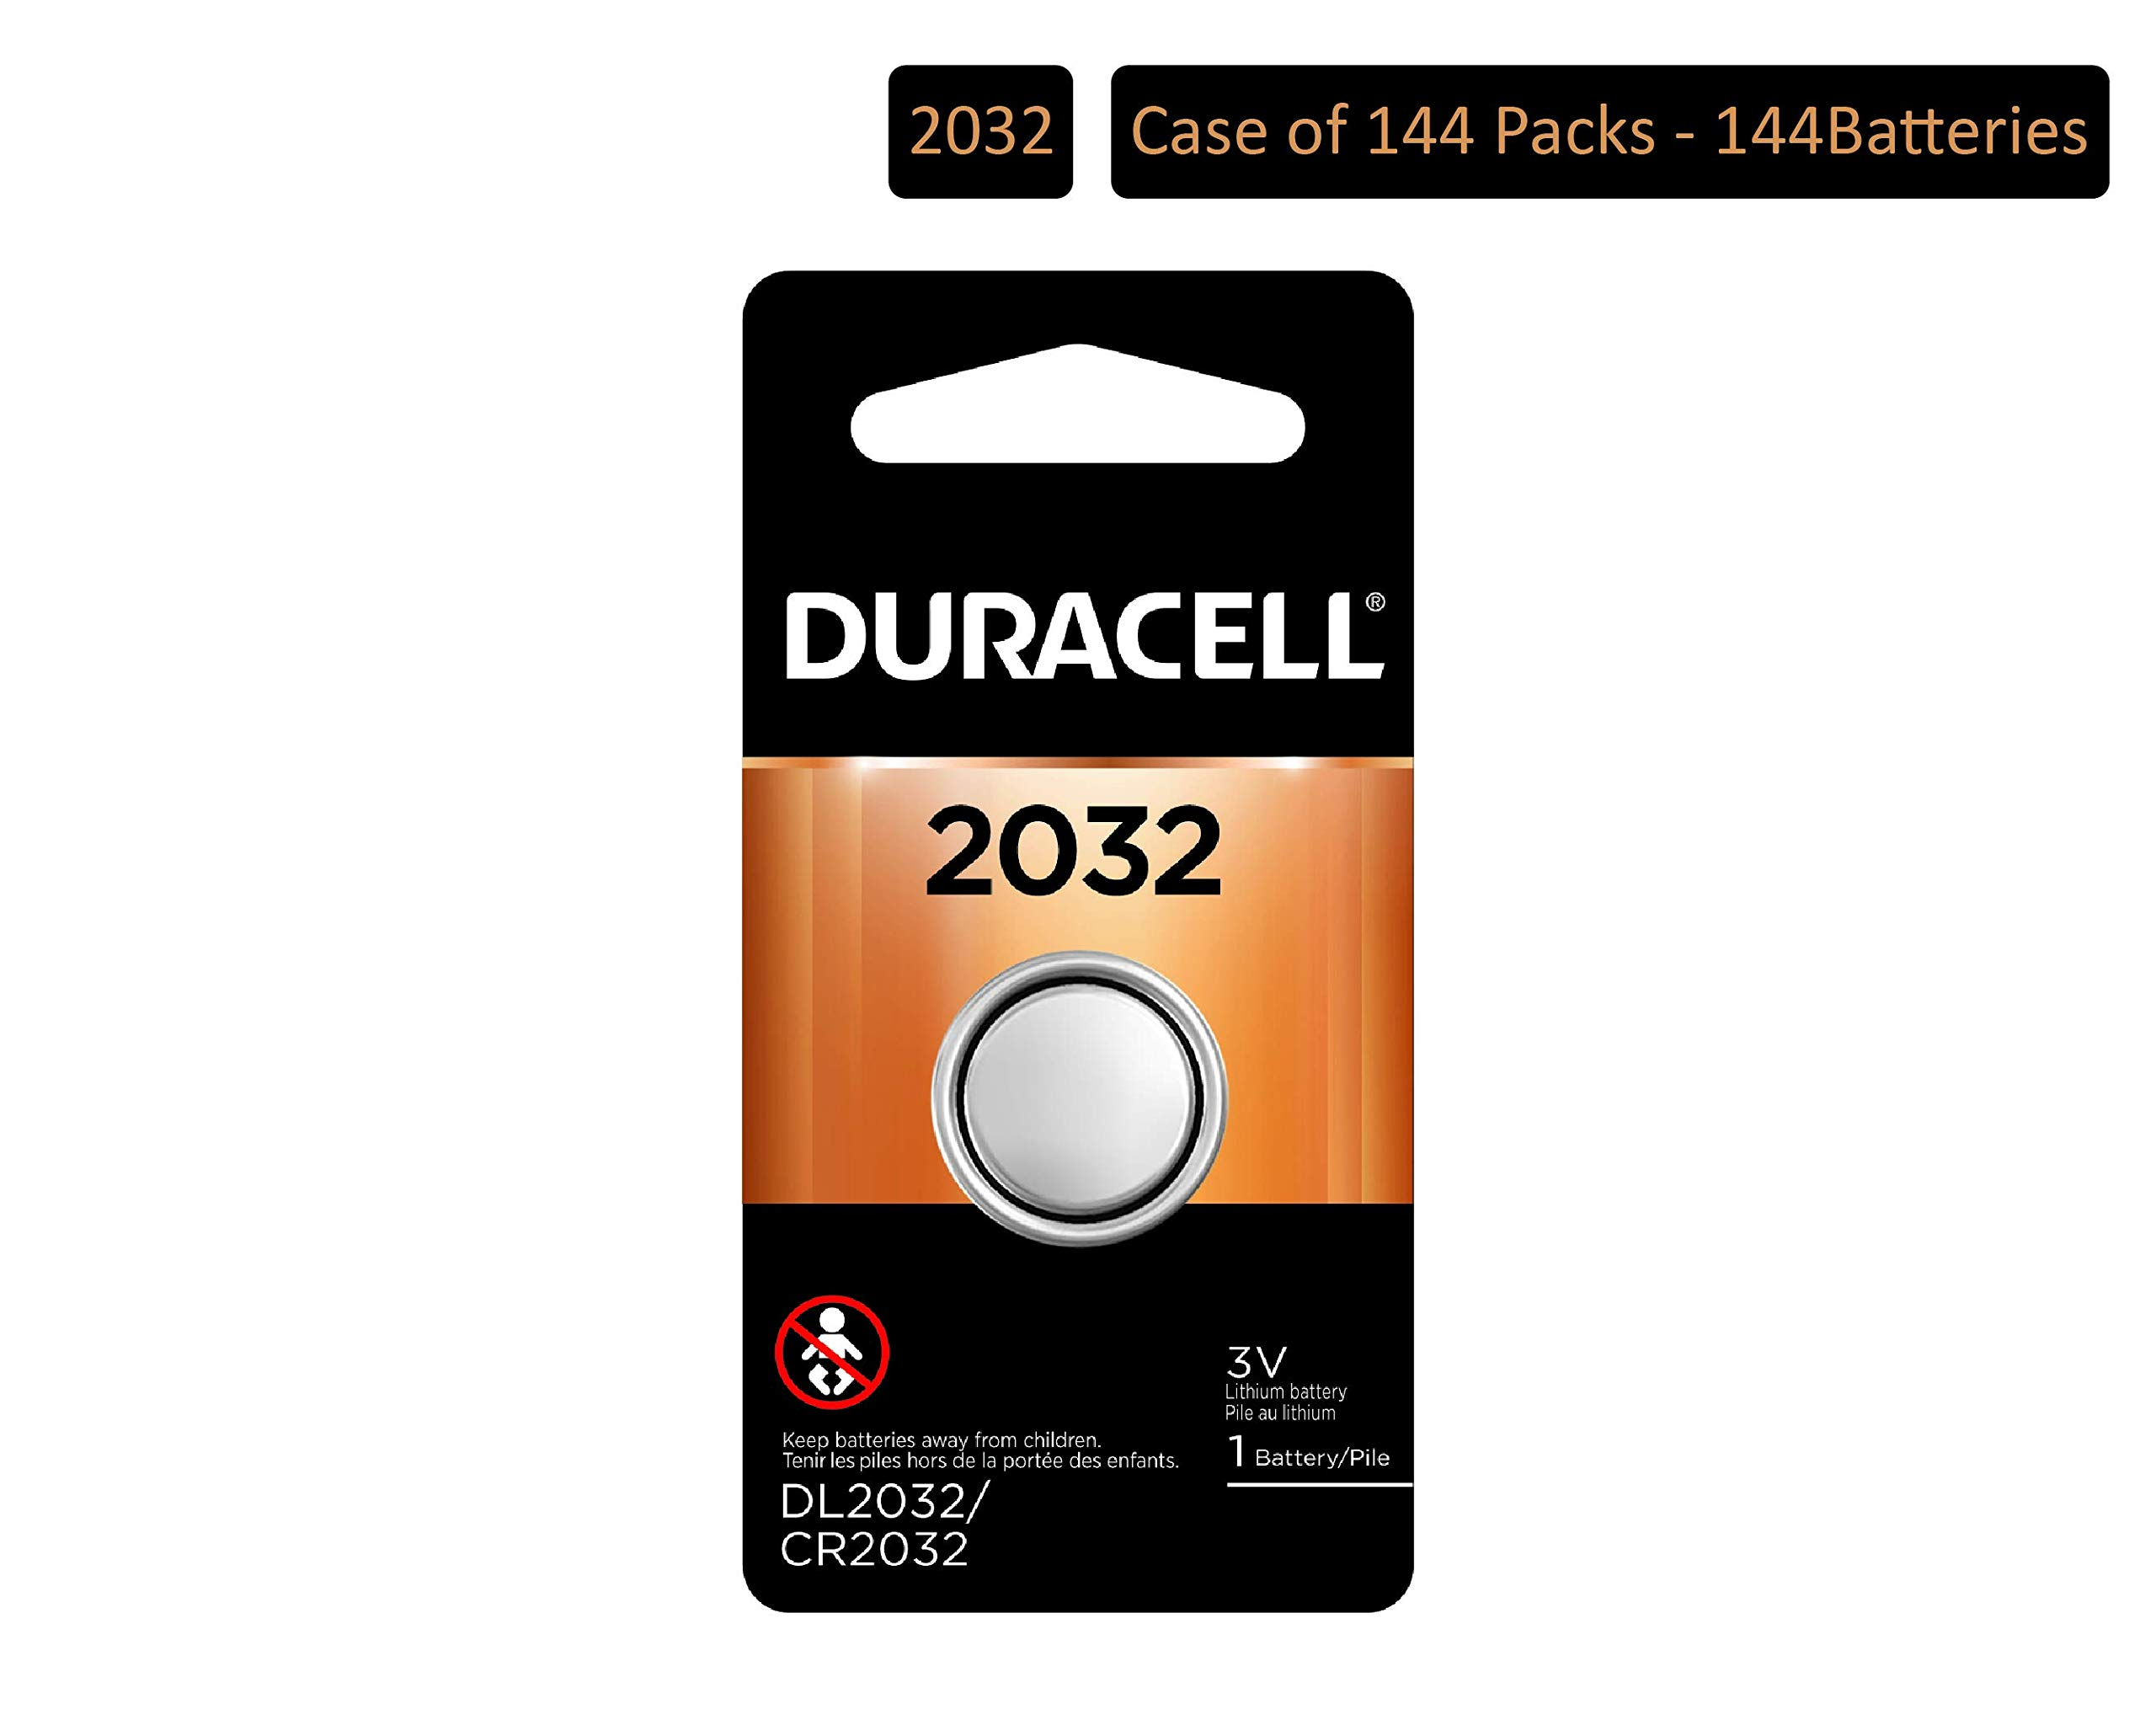 Duracell - 2032 3V Lithium Coin Battery - Long Lasting Battery (Pack of 144) by Duracell